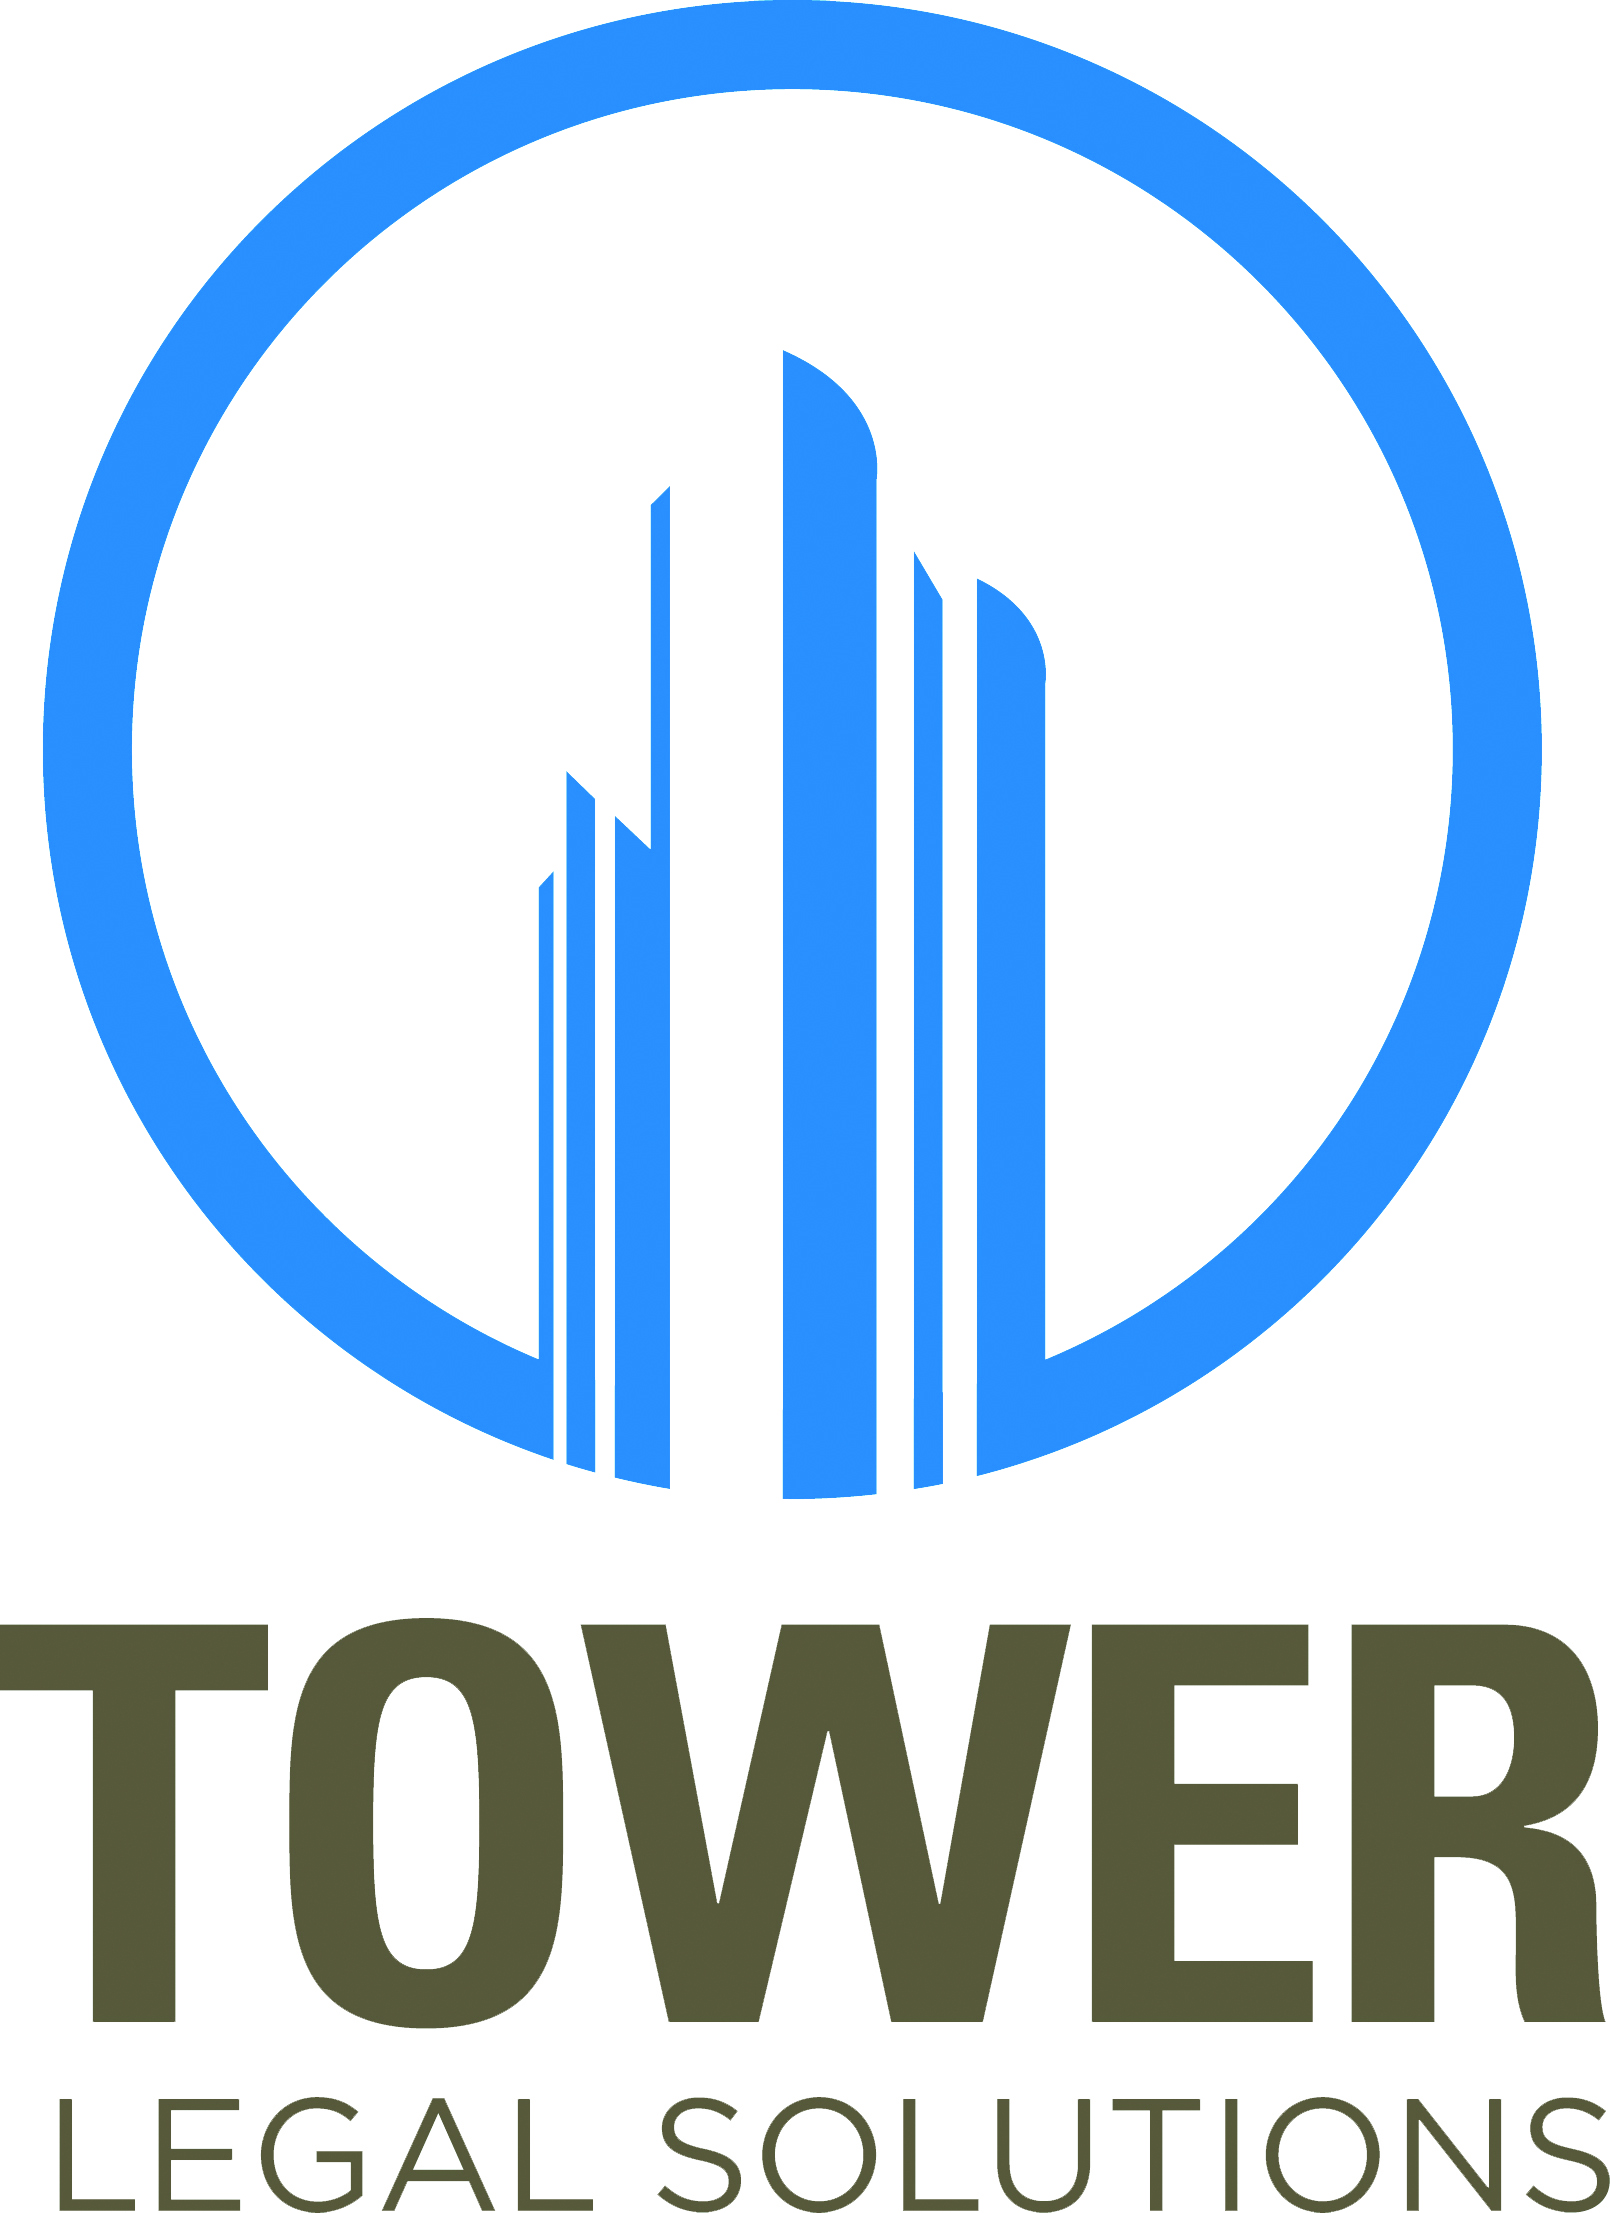 Tower Legal Solutions Names Dwight Point As National